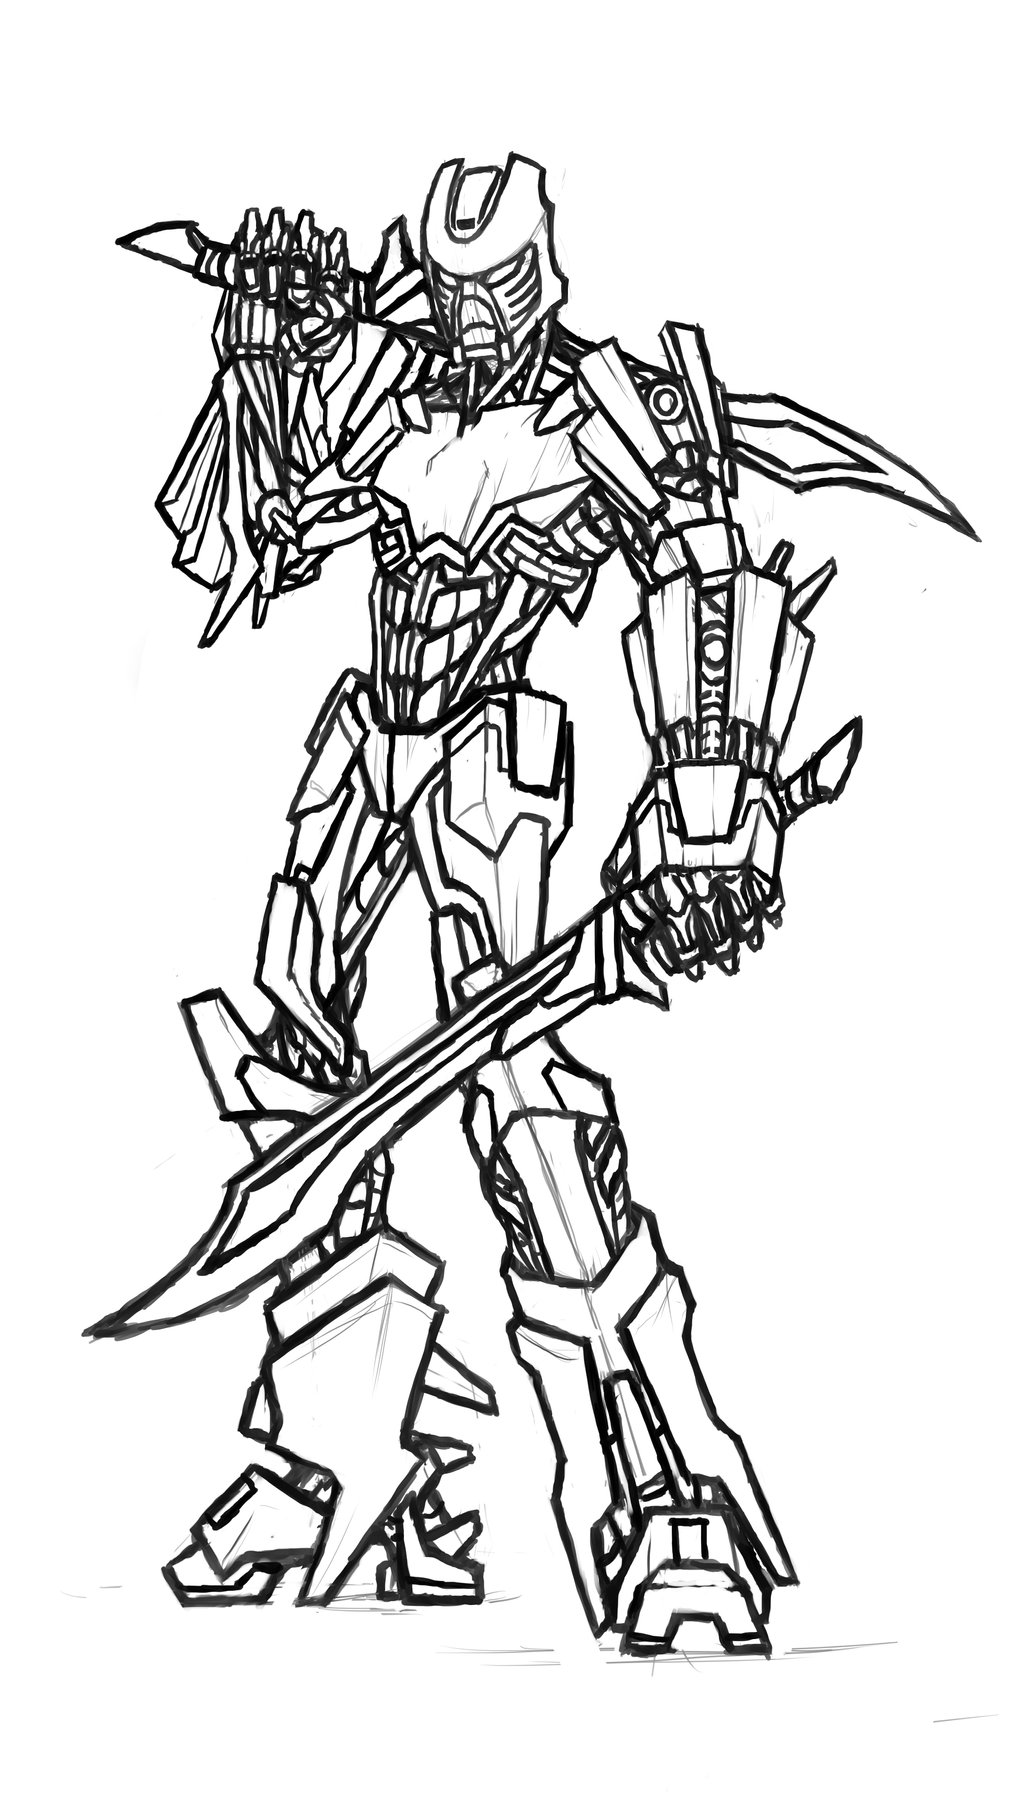 tahu 2015 bionicle lineart by kanoro studio on deviantart